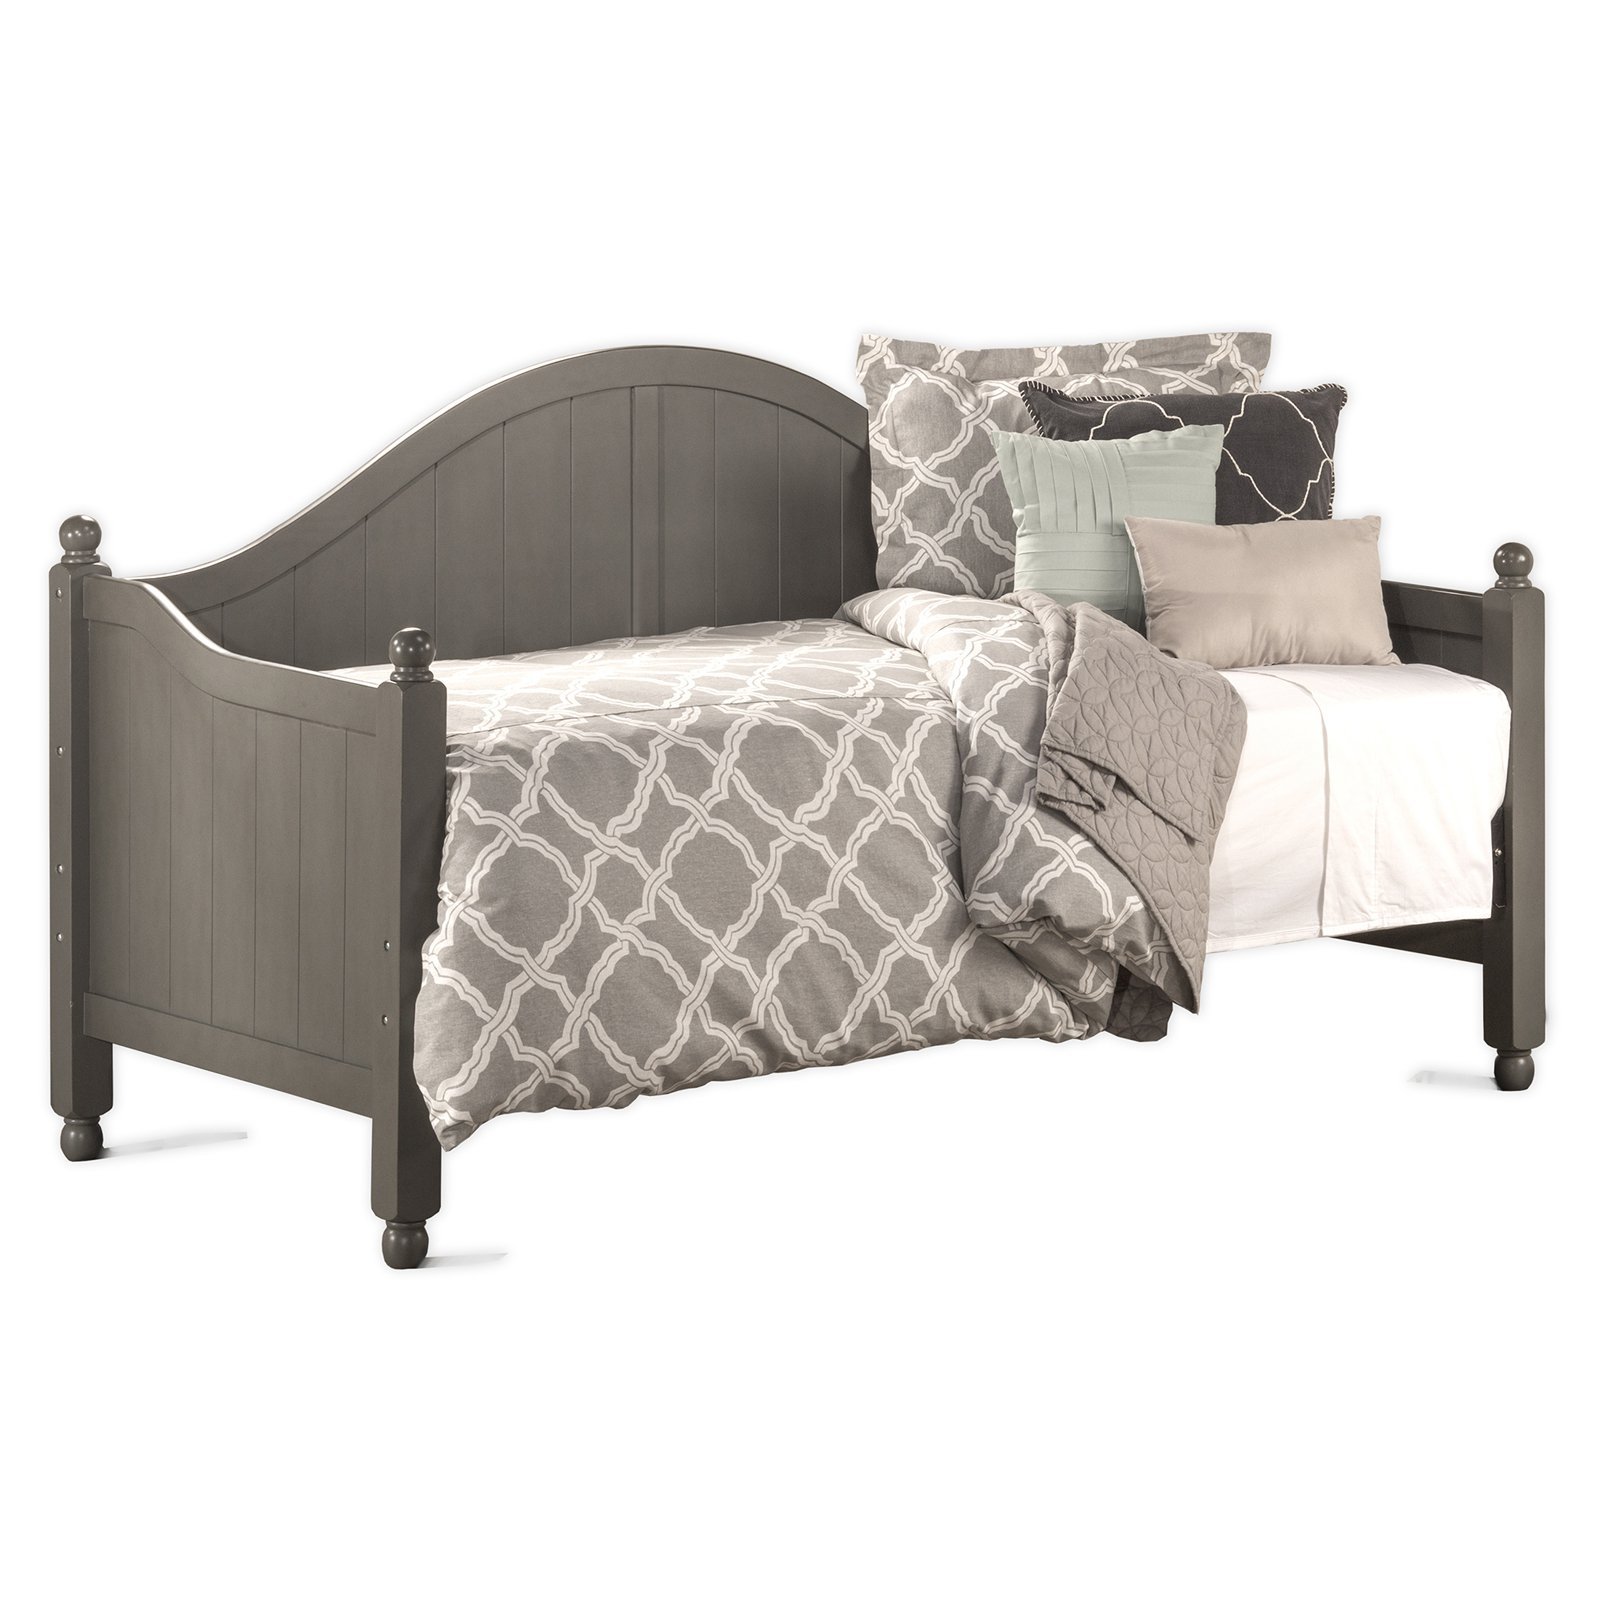 Augusta Daybed with Daybed Suspension Deck, Stone